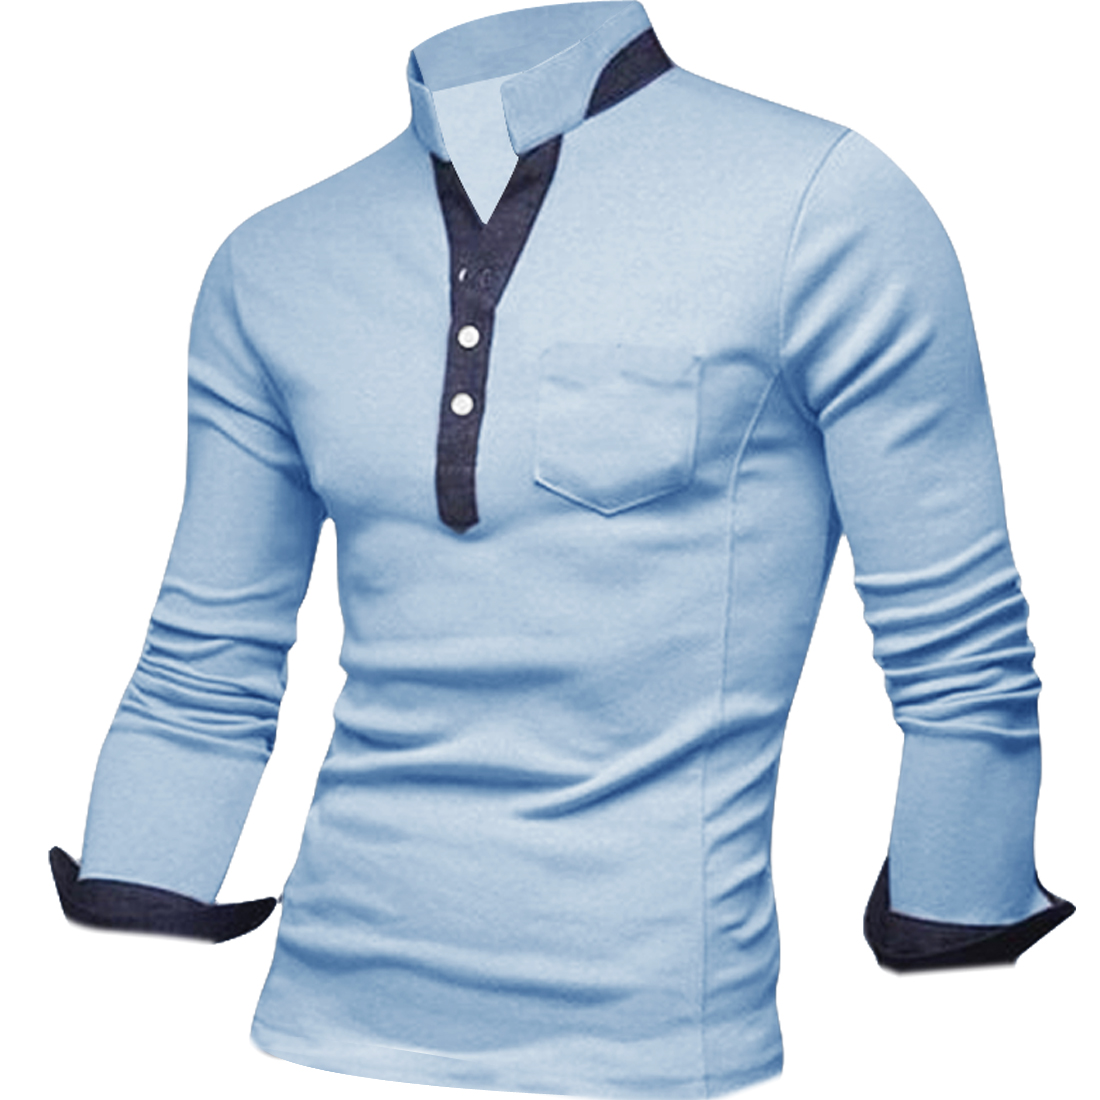 Stylish Mans Light Blue Color Half Buttoend Front Slim Fit Polo Shirt M